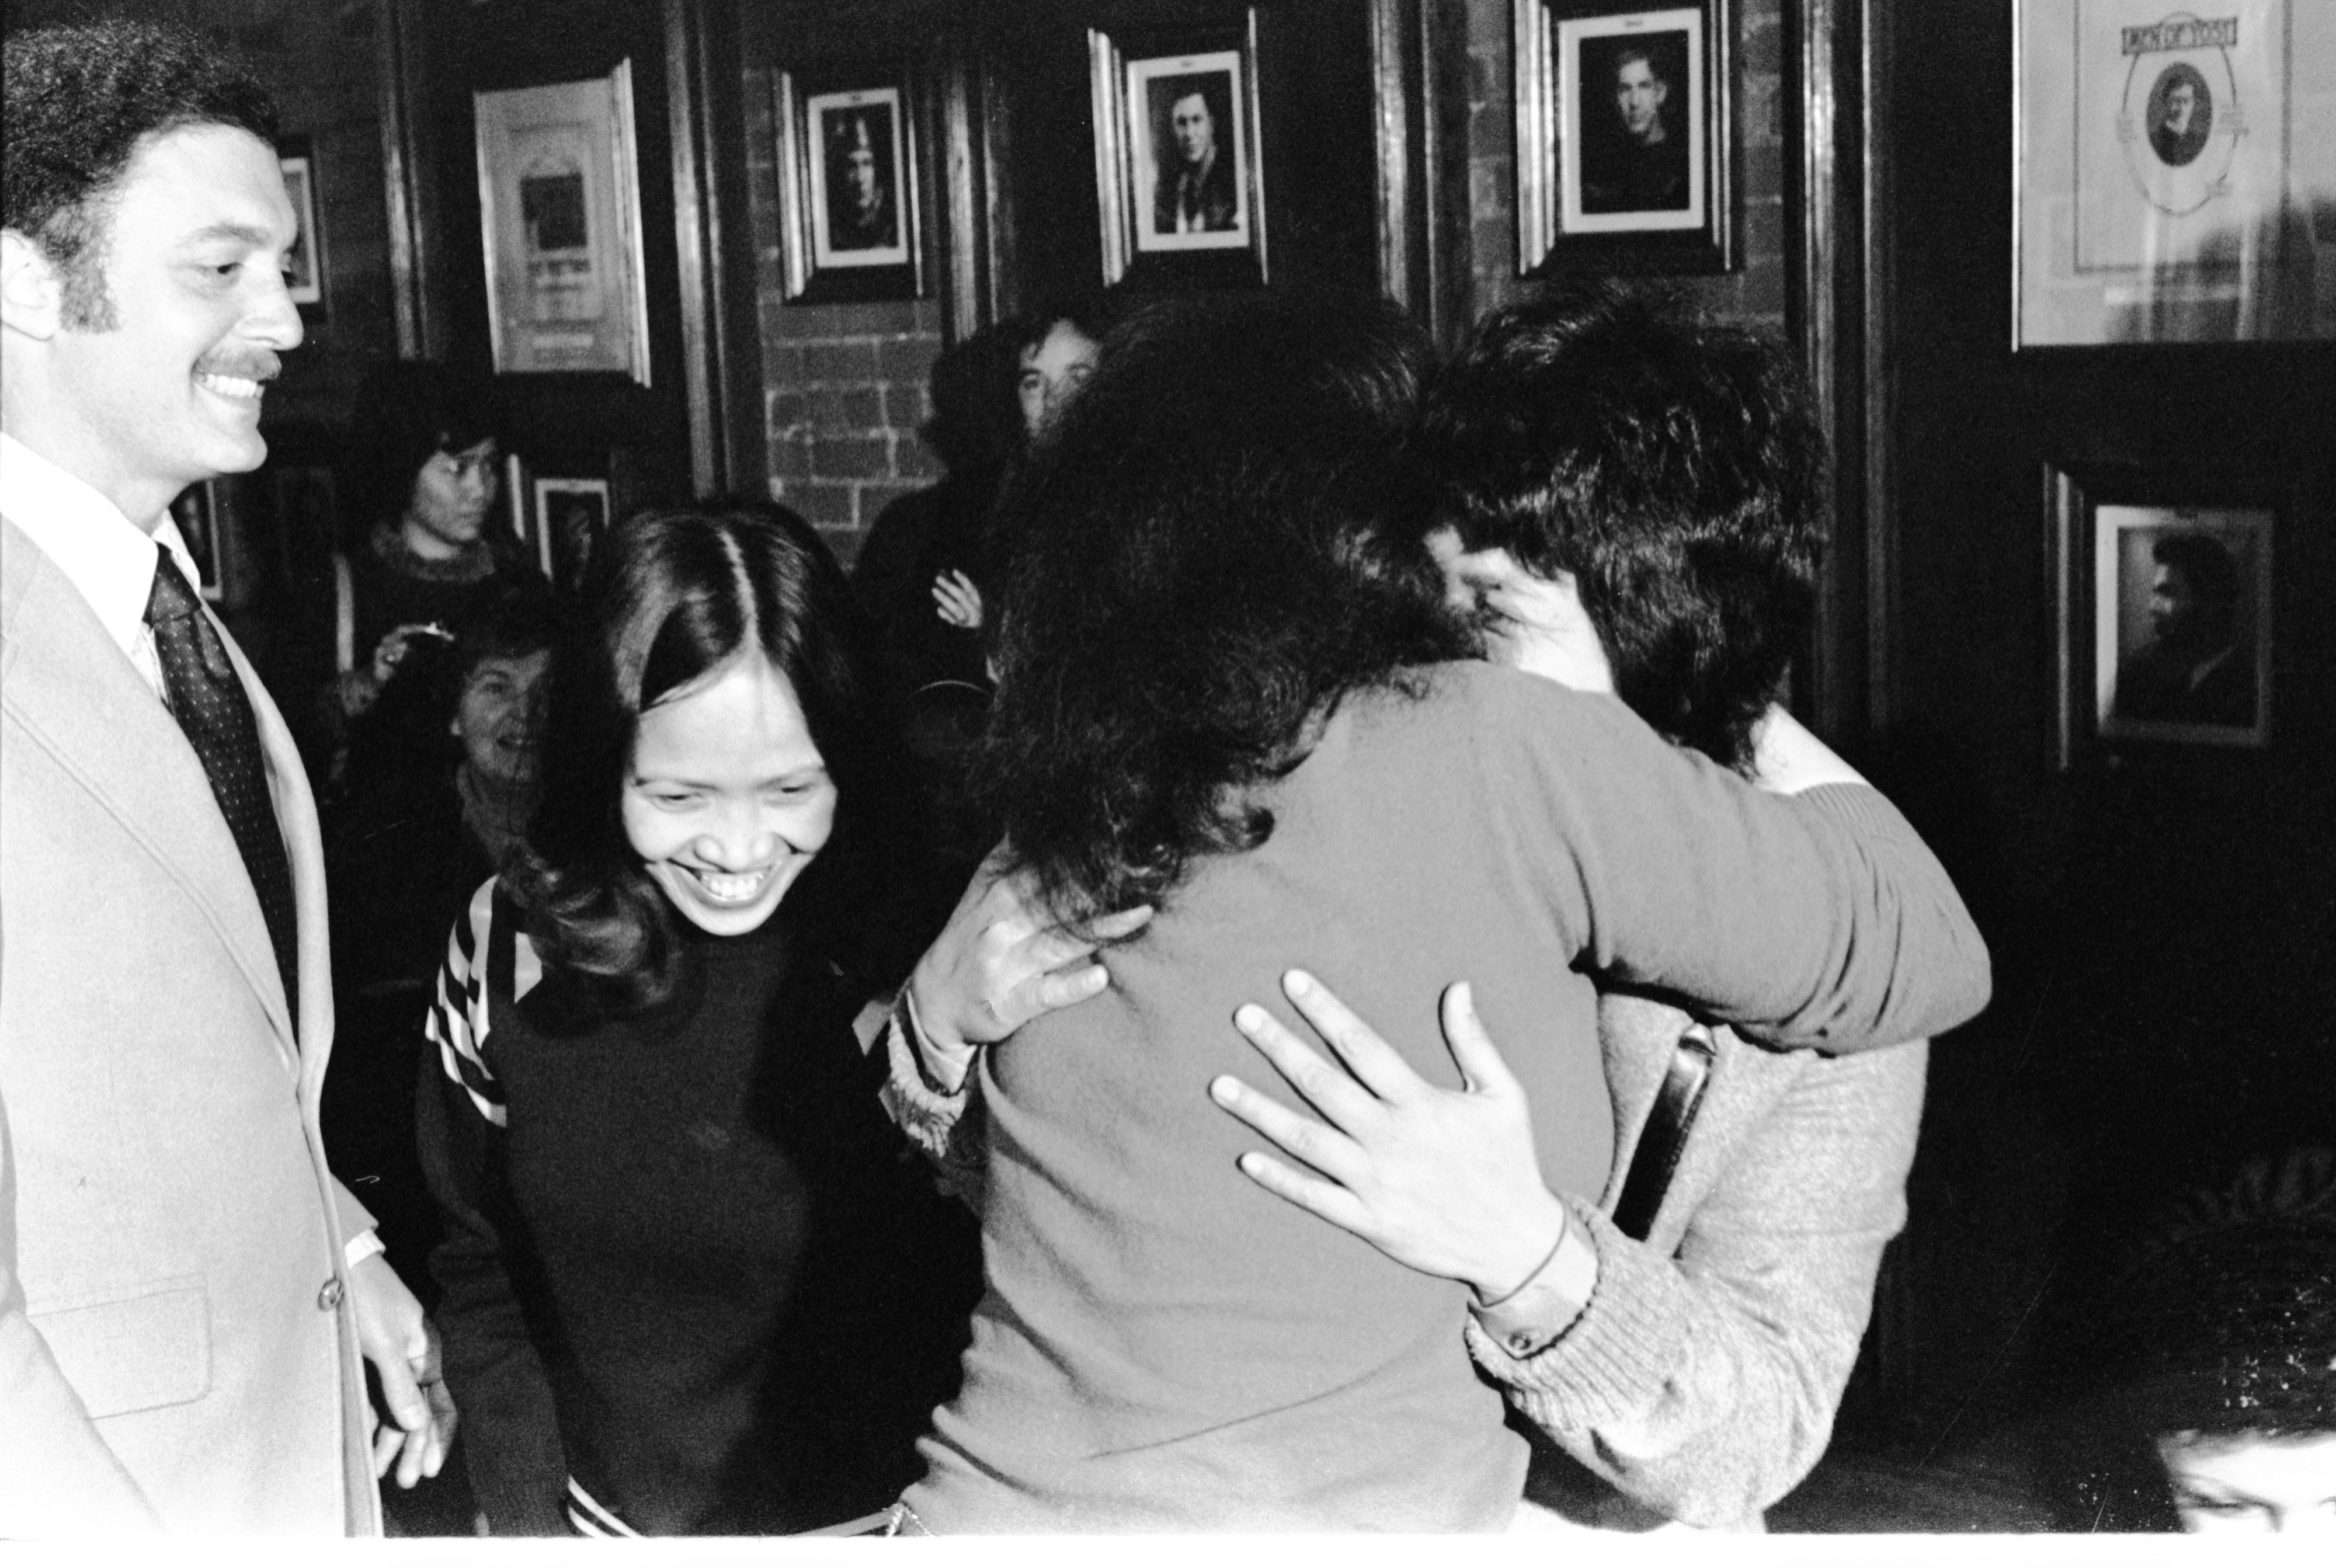 VA Nurses, Filipina Narciso Getting Hug From Friend, & Leonora Perez Leaving Press Conference After Hearing About Retrial, December 1977 image